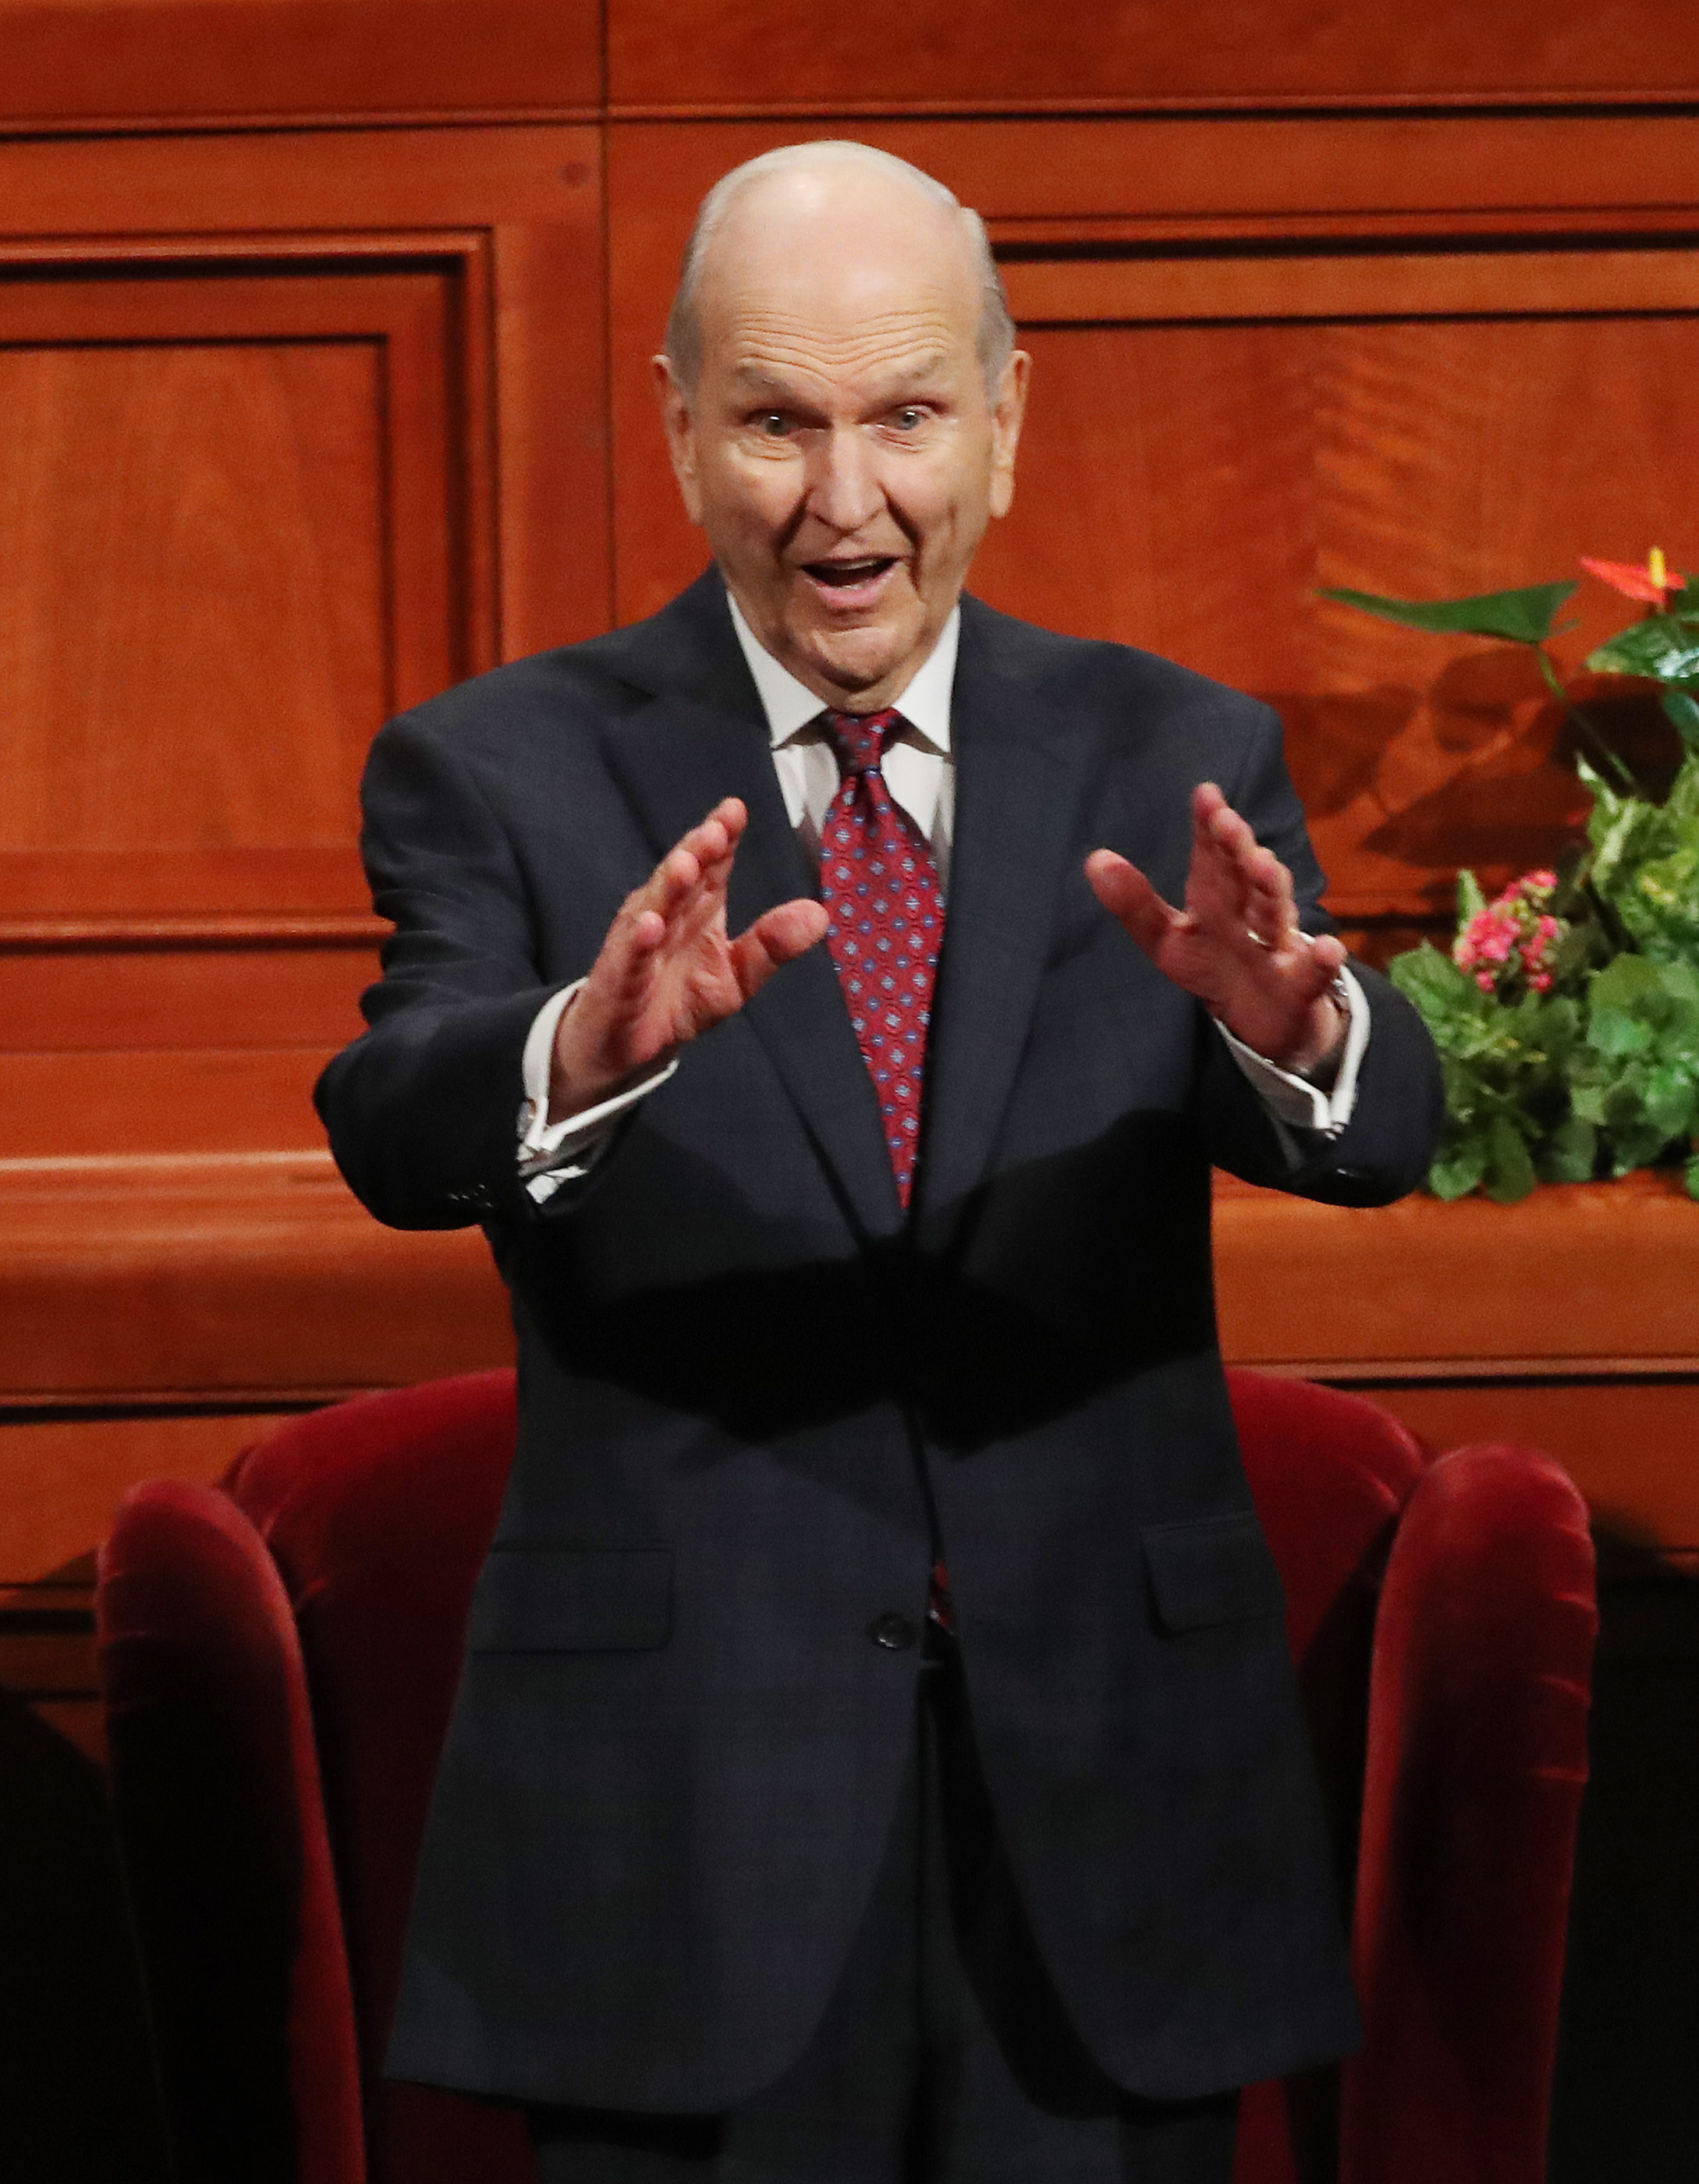 President Russell M. Nelson gestures to attendees prior to the Saturday afternoon session of the 188th Semiannual General Conference of The Church of Jesus Christ of Latter-day Saints in the Conference Center in Salt Lake City on Sunday, Oct. 7, 2018.